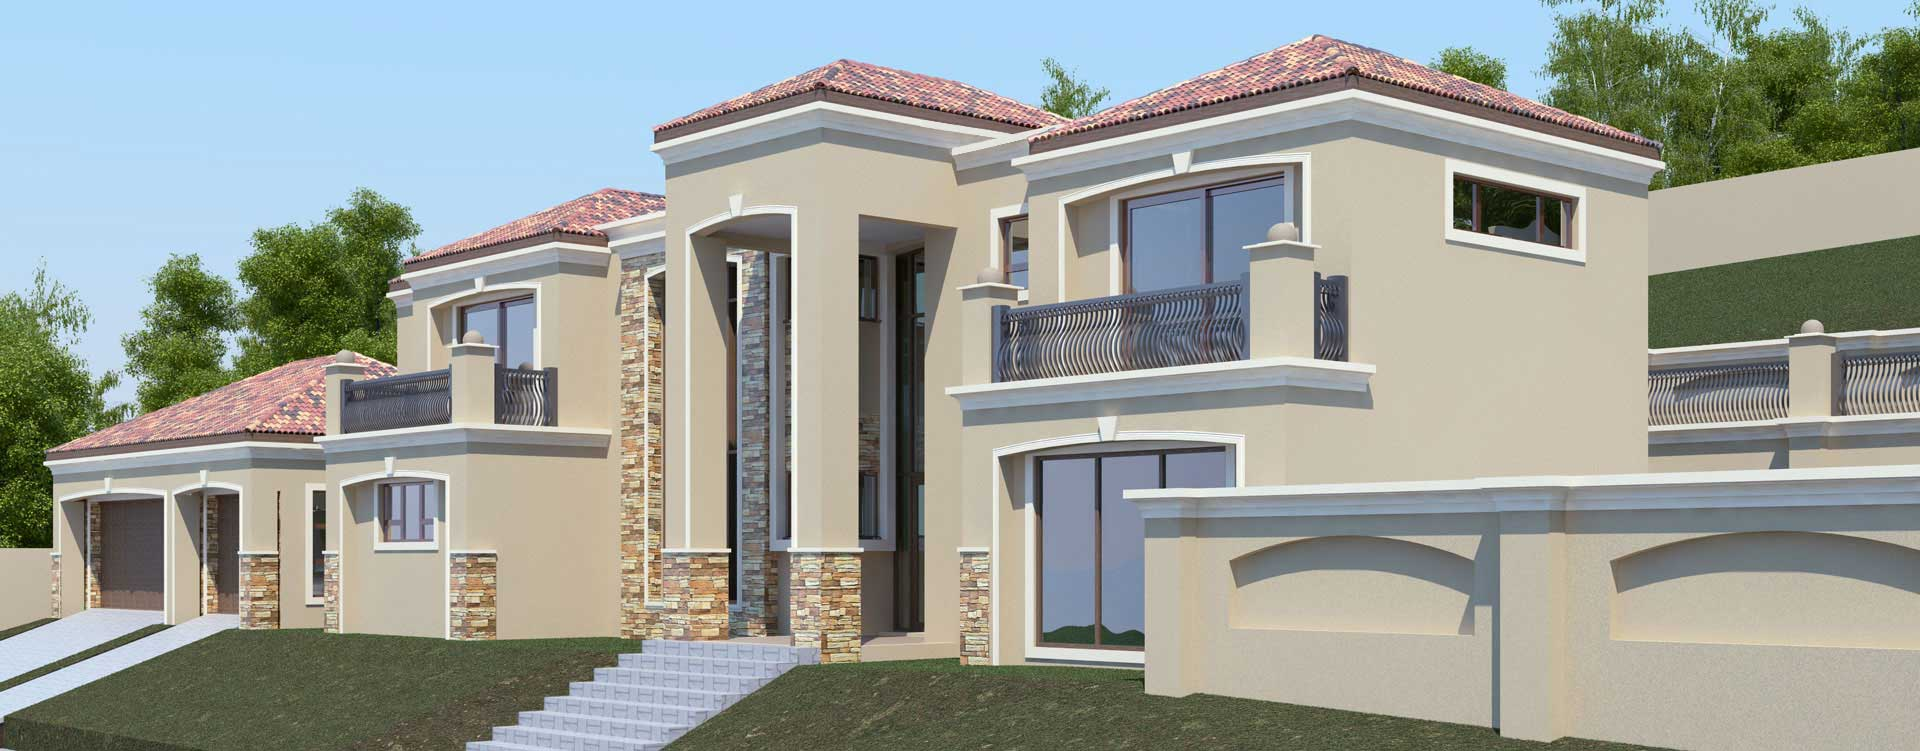 Modern Tuscan Style 5 Bedroom House Plan Double Y Floor Plans Nethouseplans Architectural